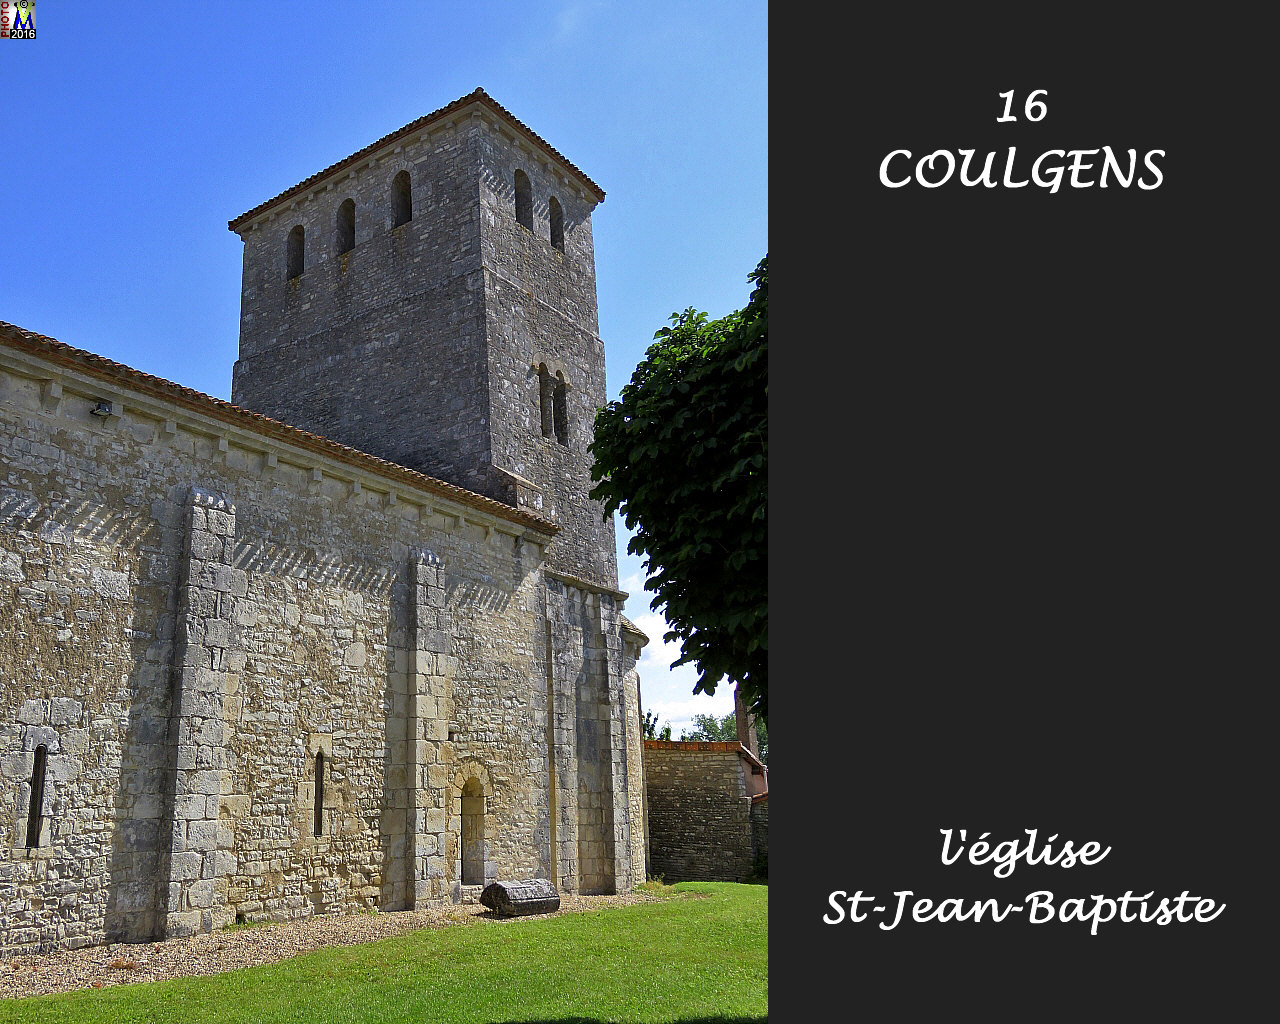 16COULGENS_eglise_1004.jpg